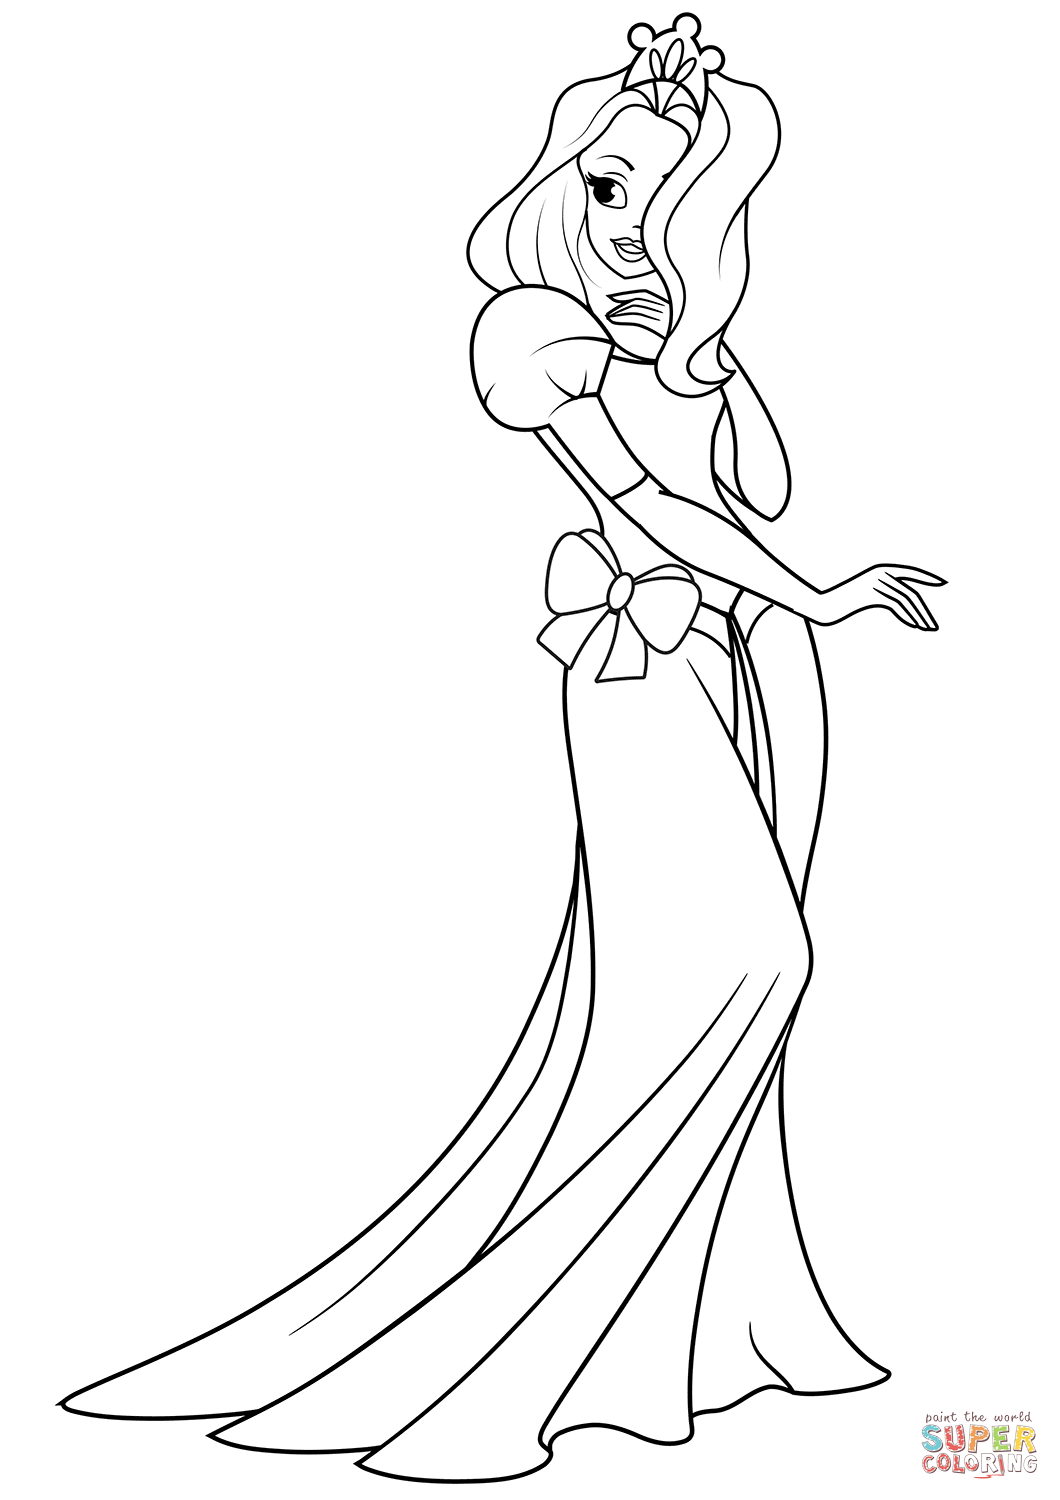 picture of girl coloring page little girl coloring pages getcoloringpagescom of girl picture coloring page